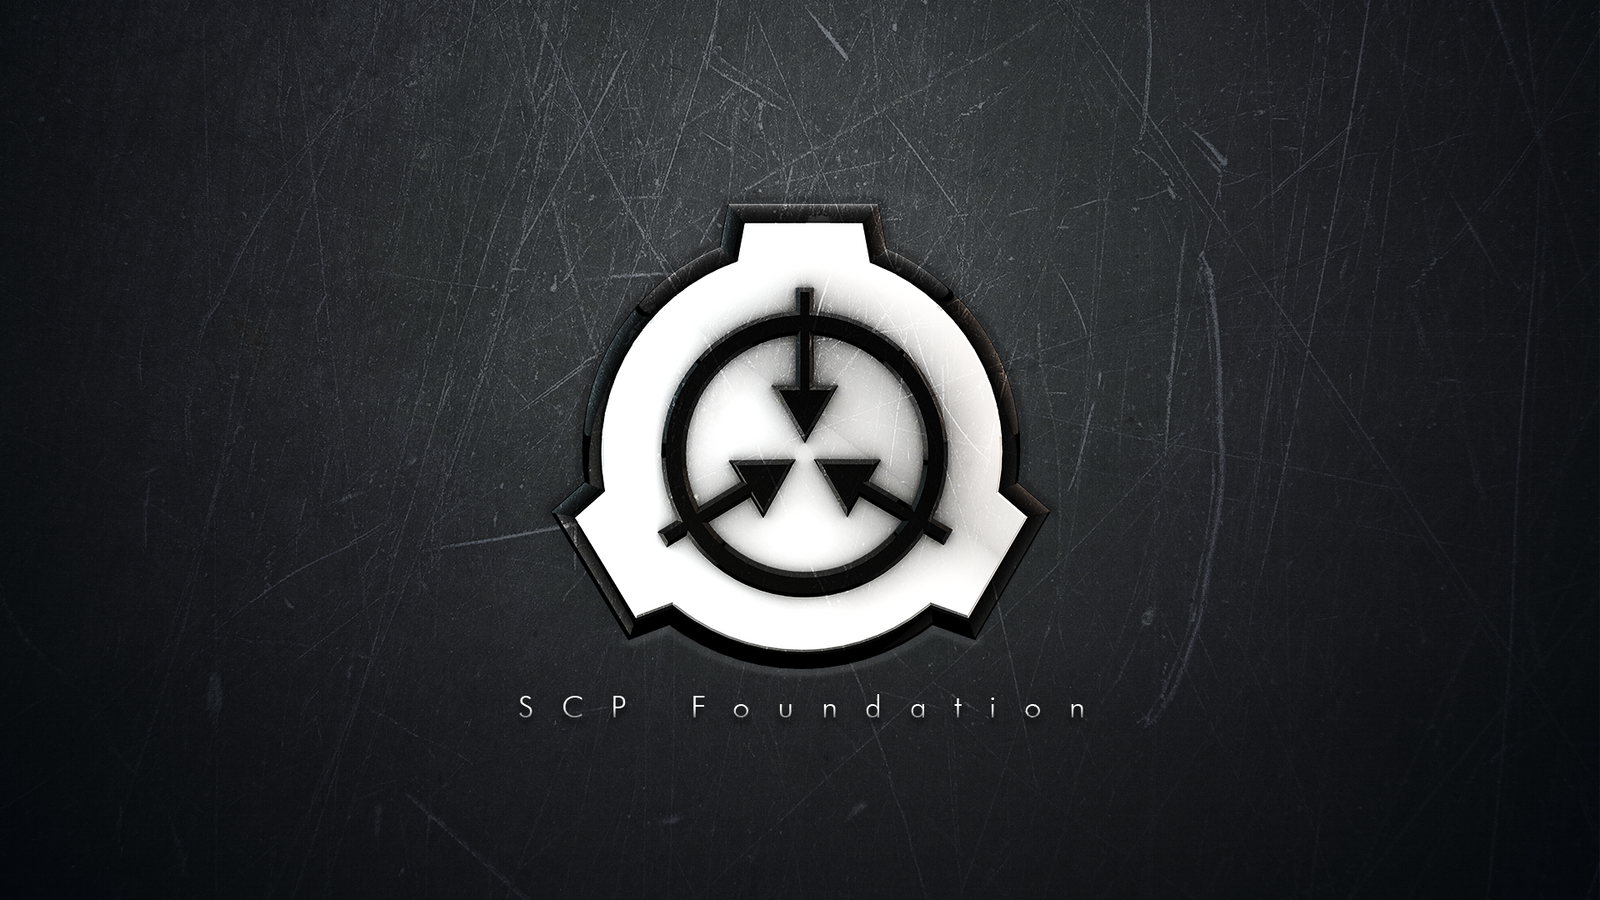 Foundation 5 background image - Png 1600x900 Background Hd Foundation